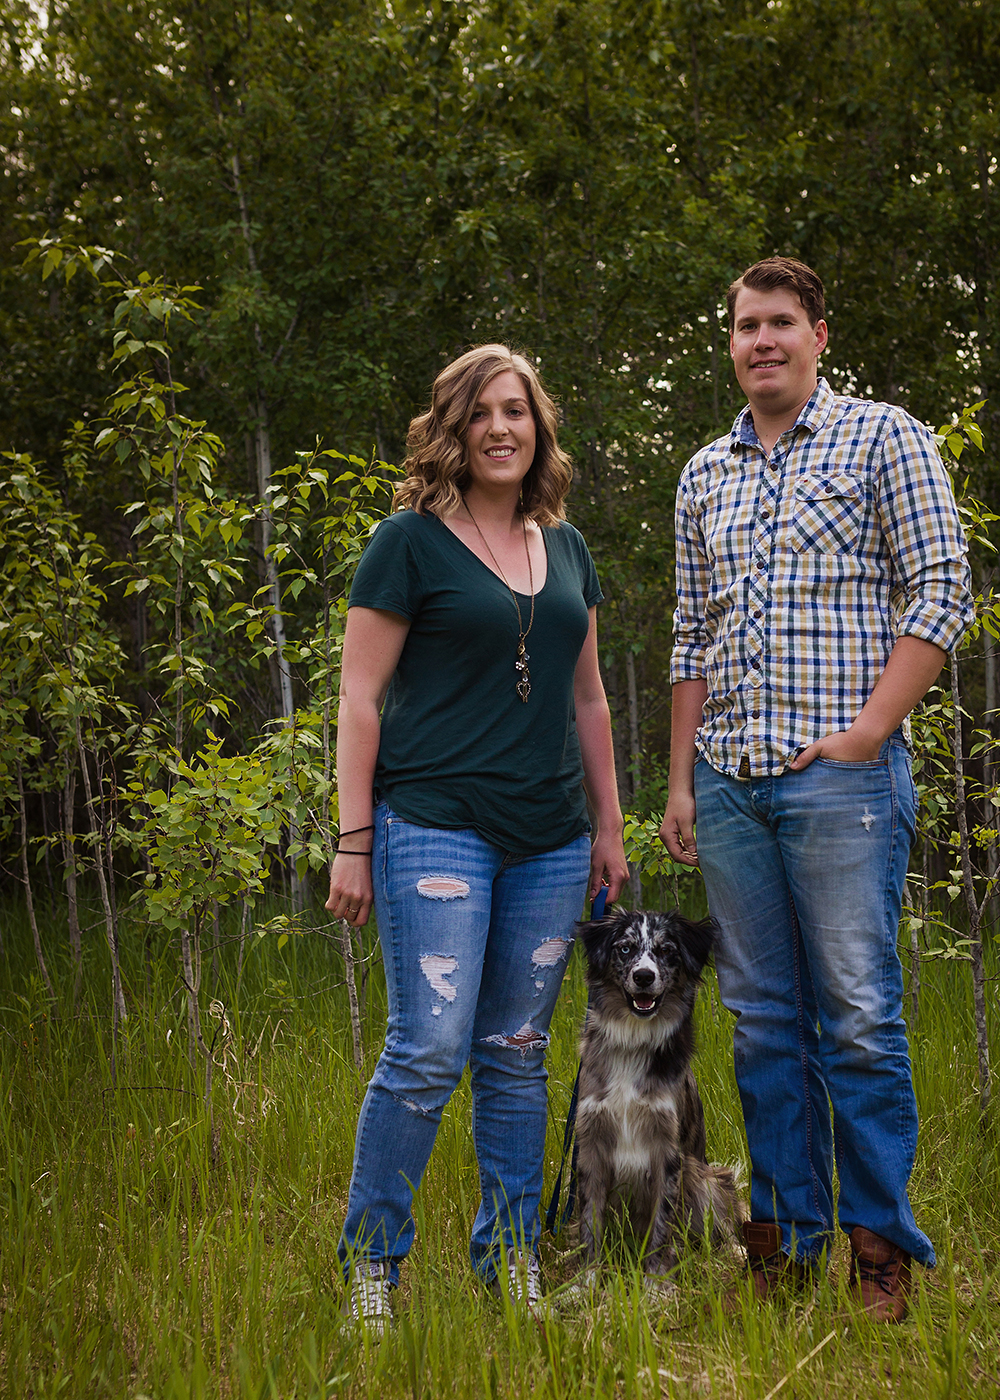 Edmonton Family Photographer_Alexa and Kory Sneak Peek 2.jpg